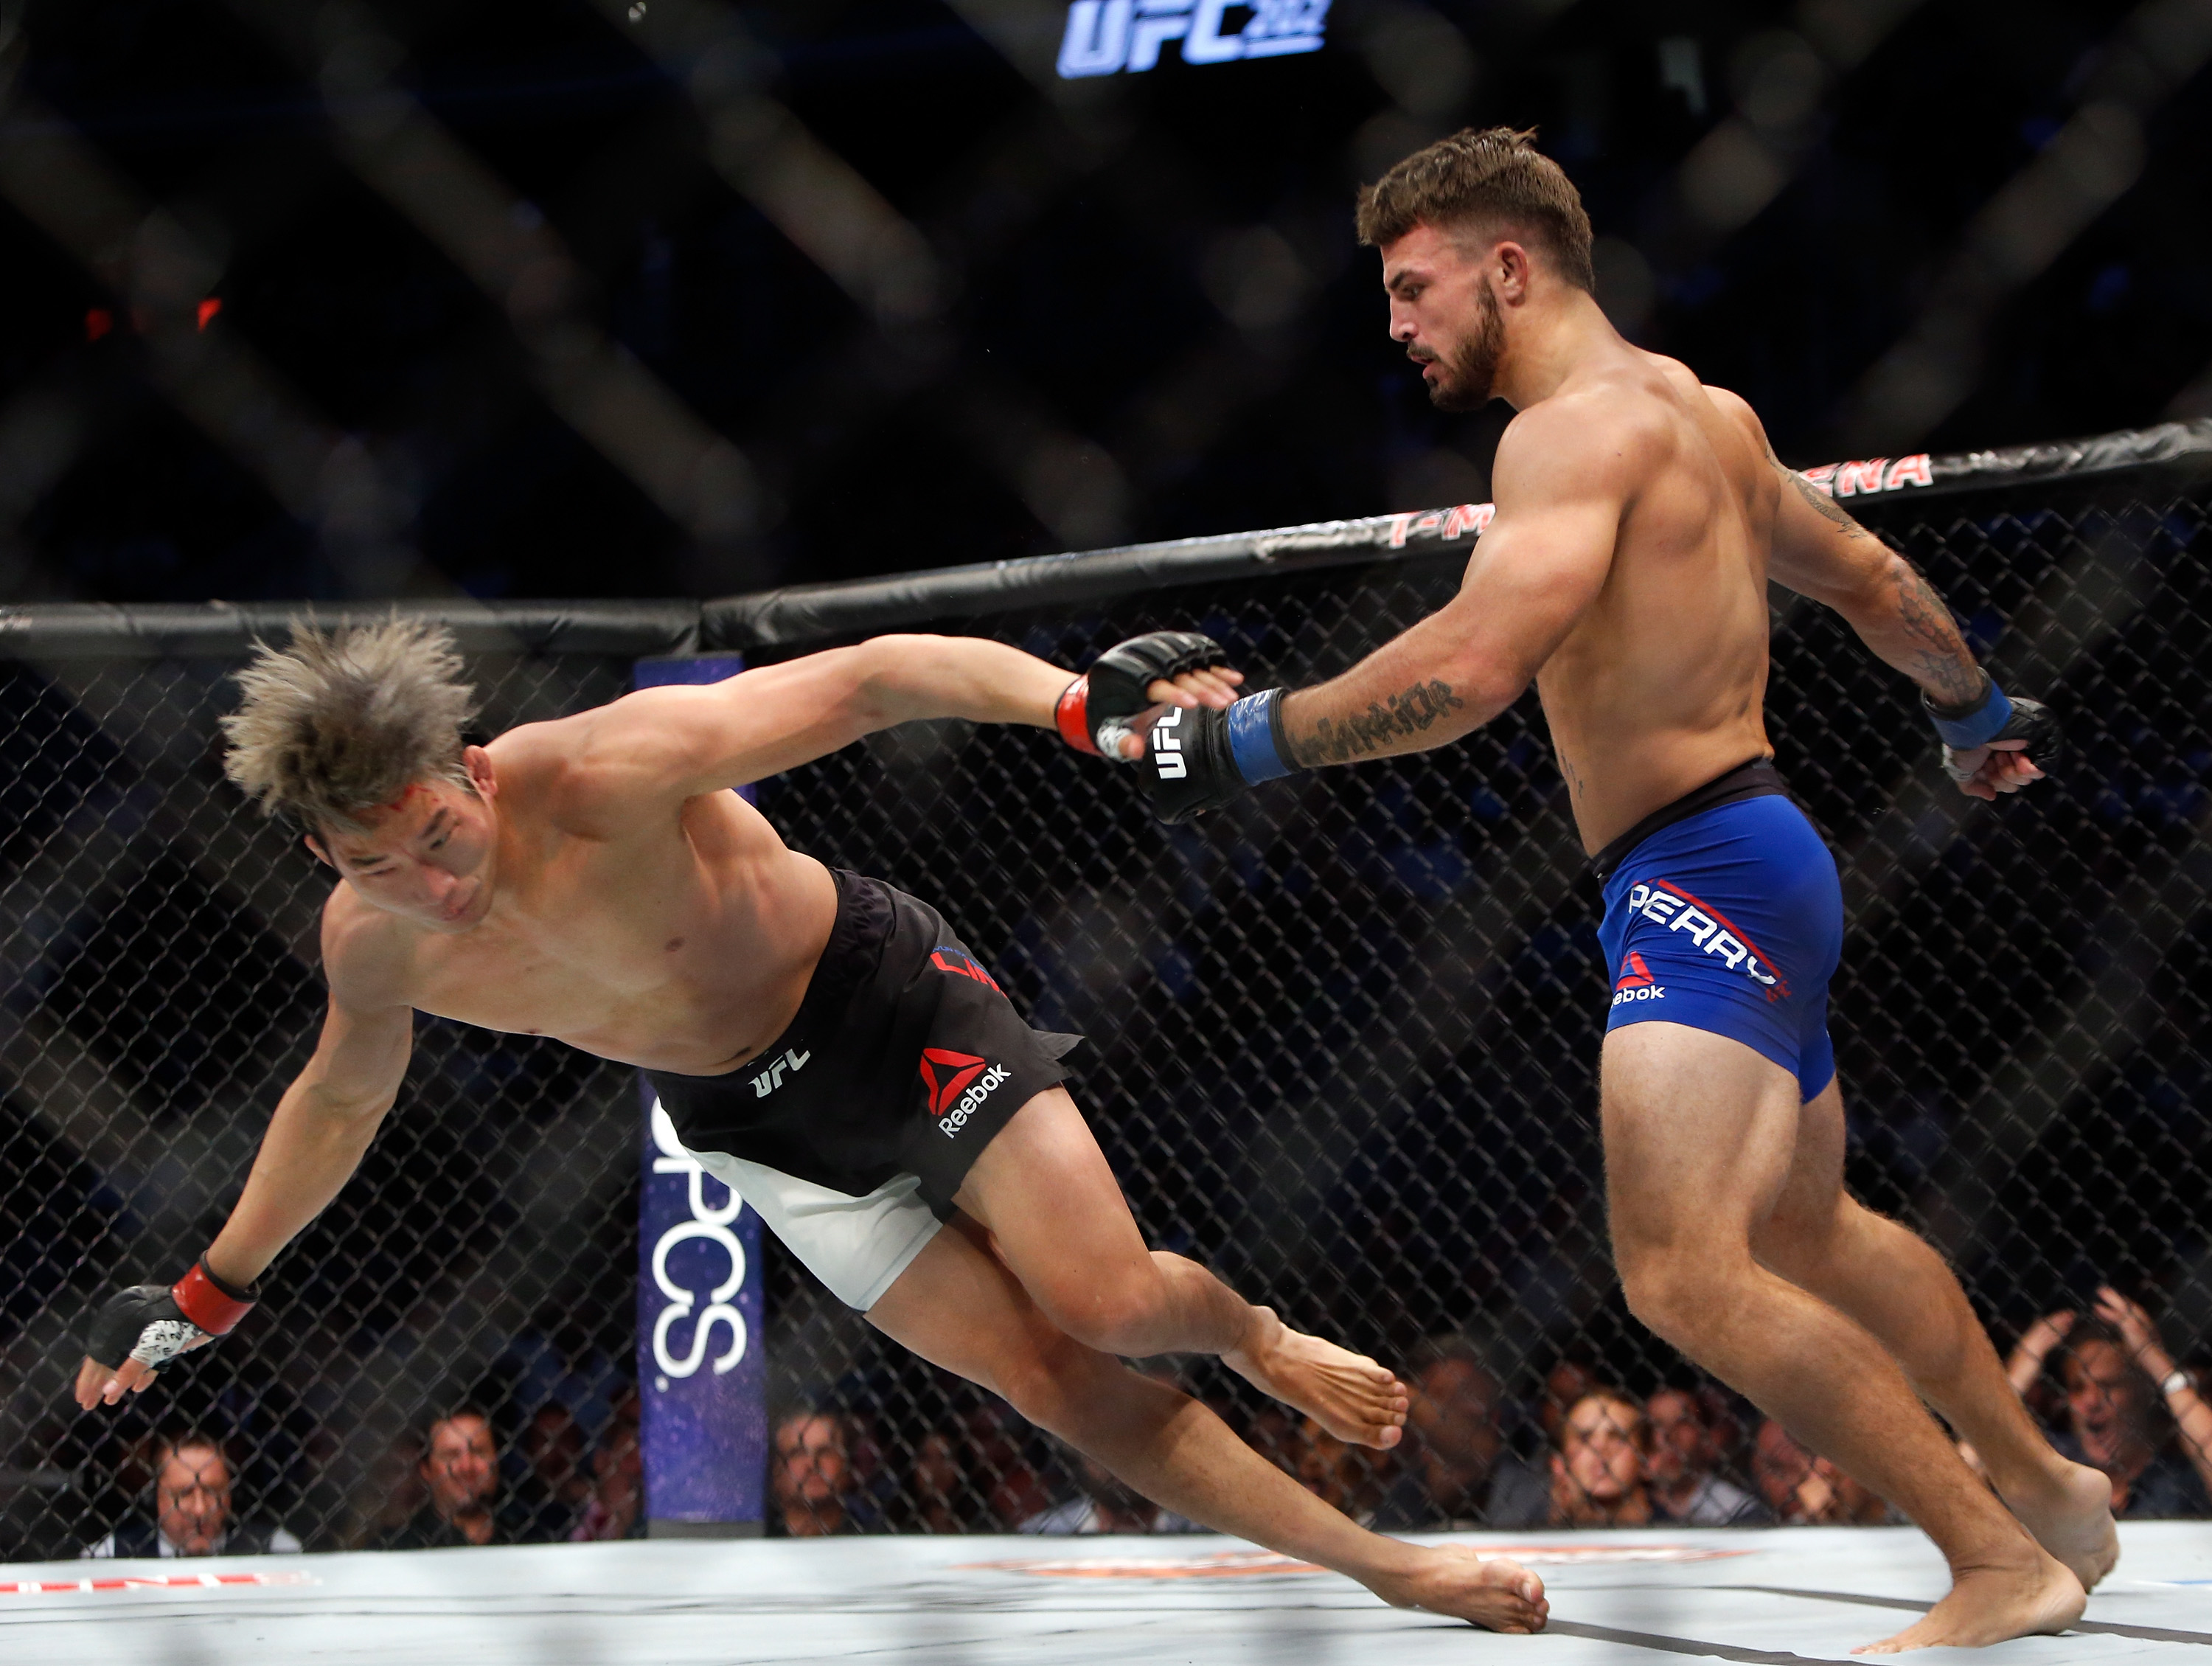 Mike Perrys Brutal UFC Knockout Debut Spoiled By Racist Outburst perry1